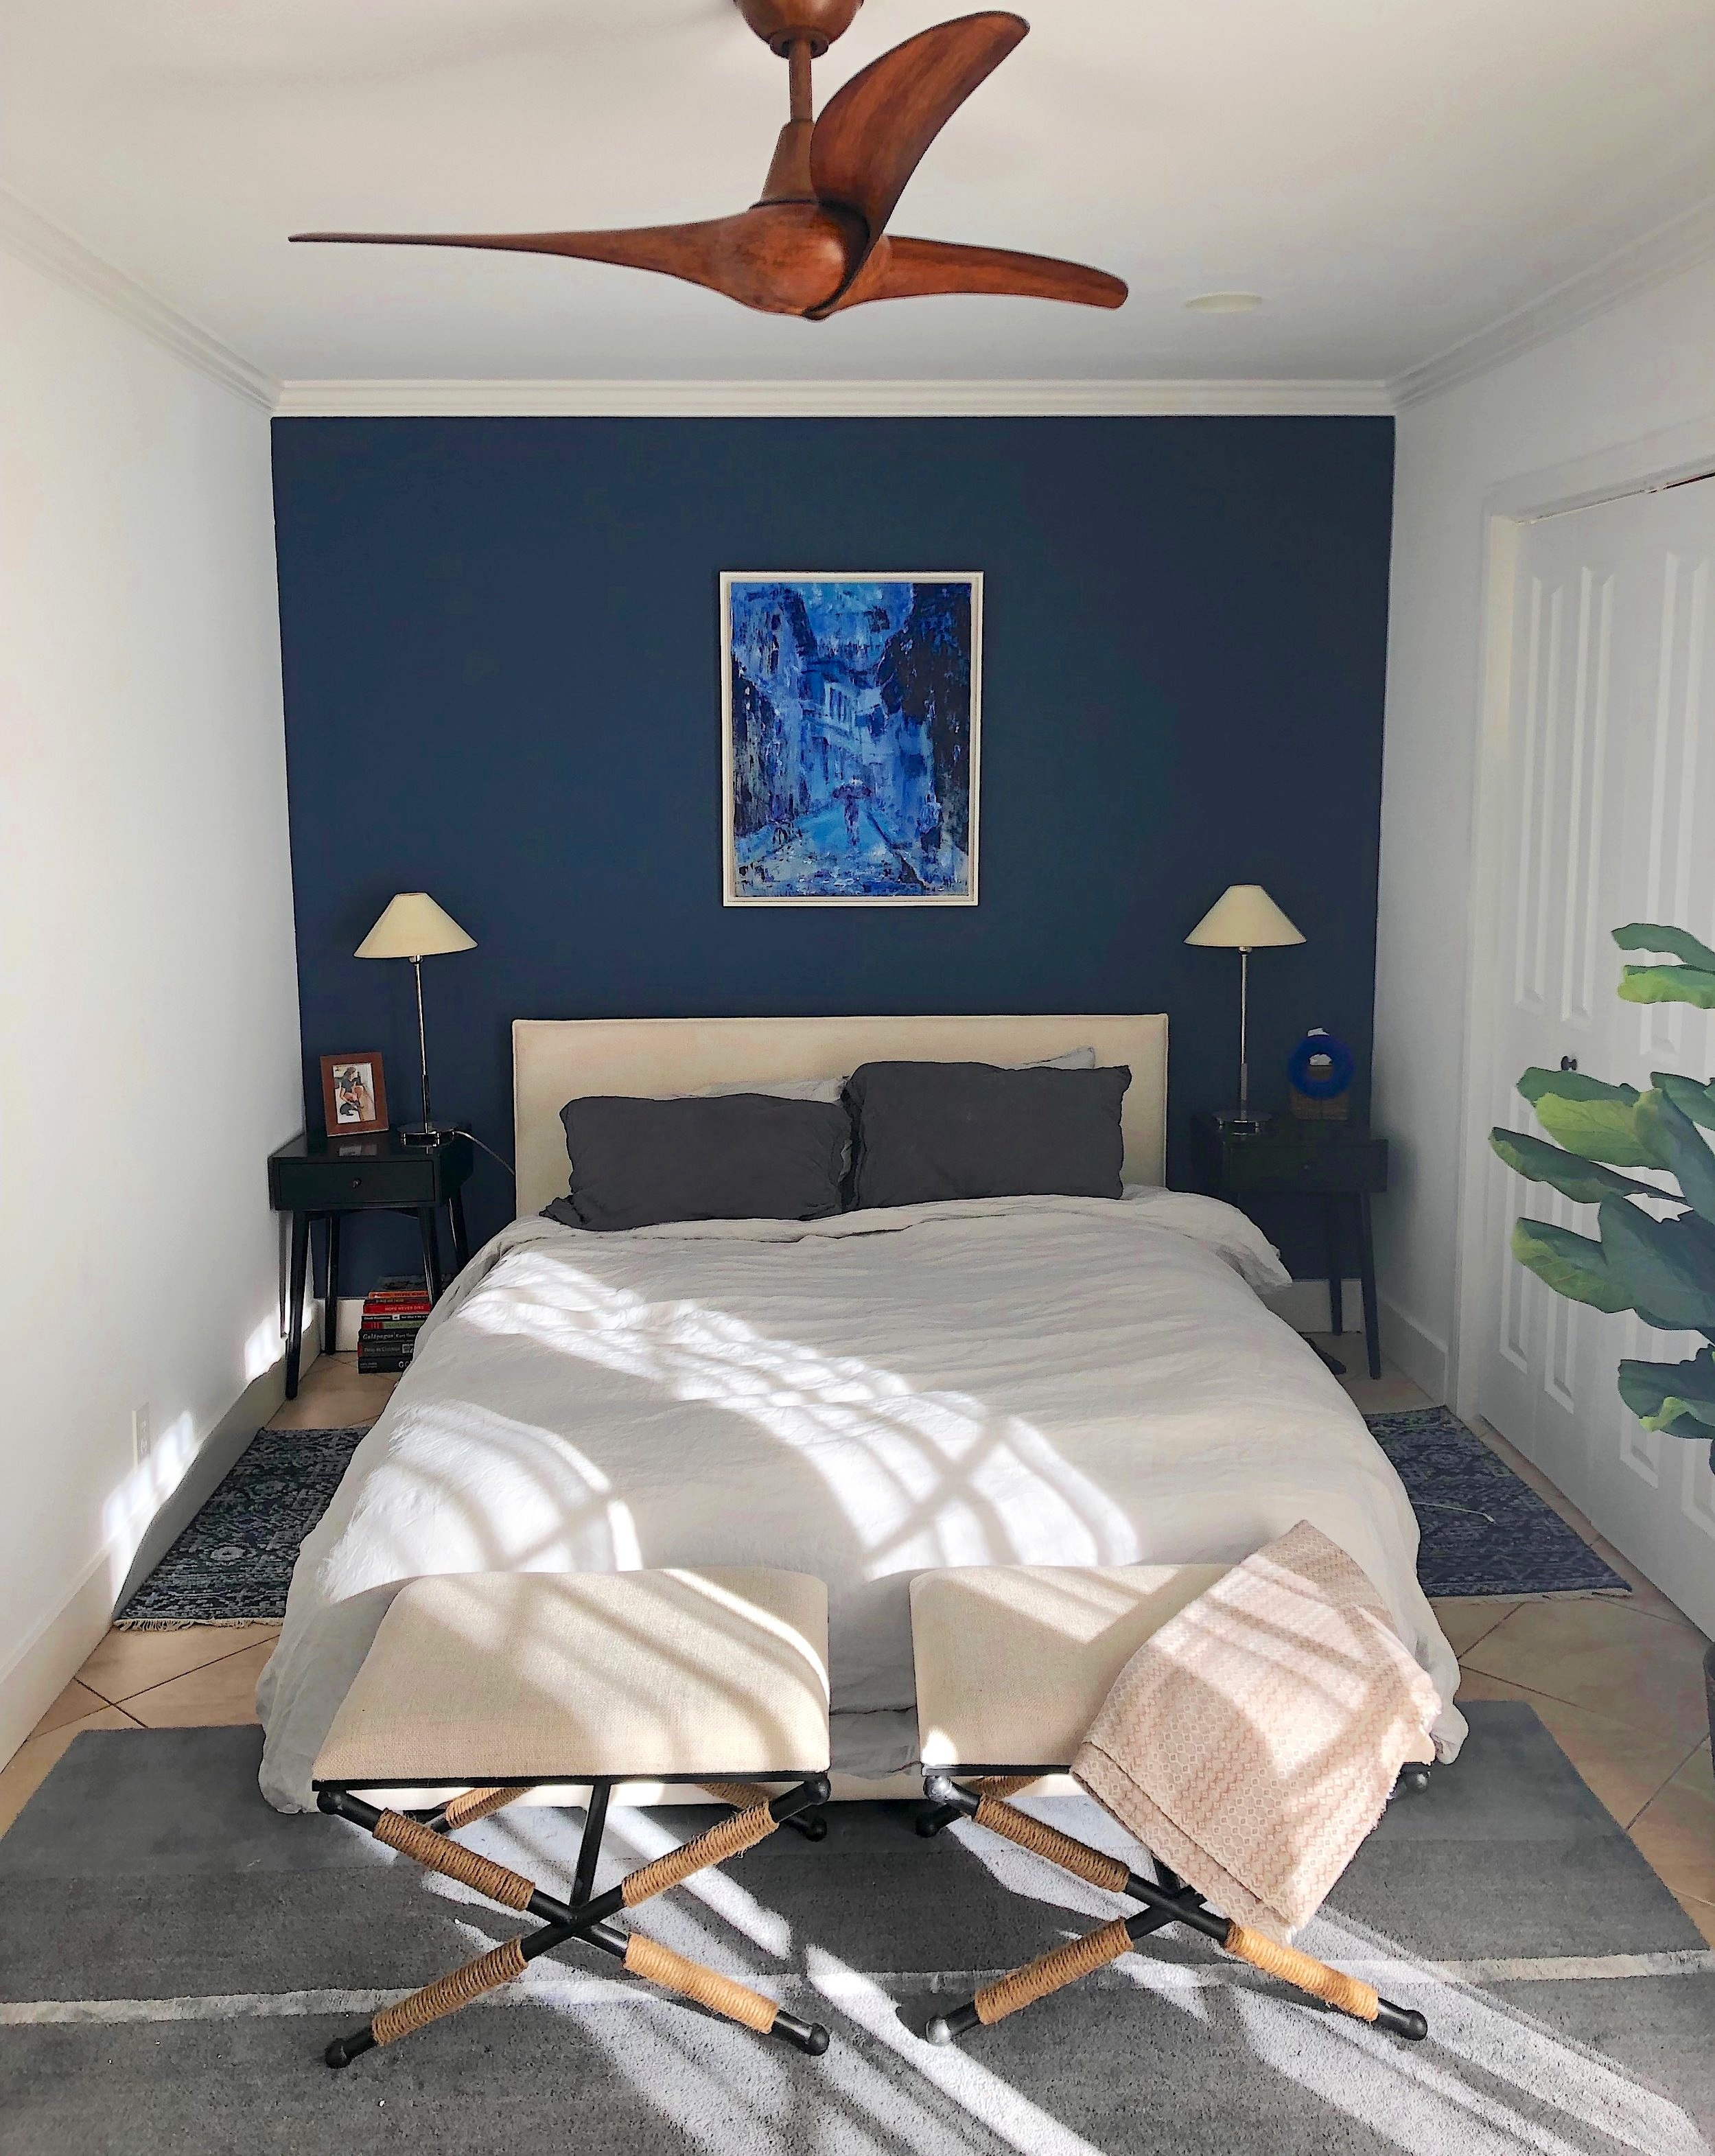 Copy of after - master bedroom